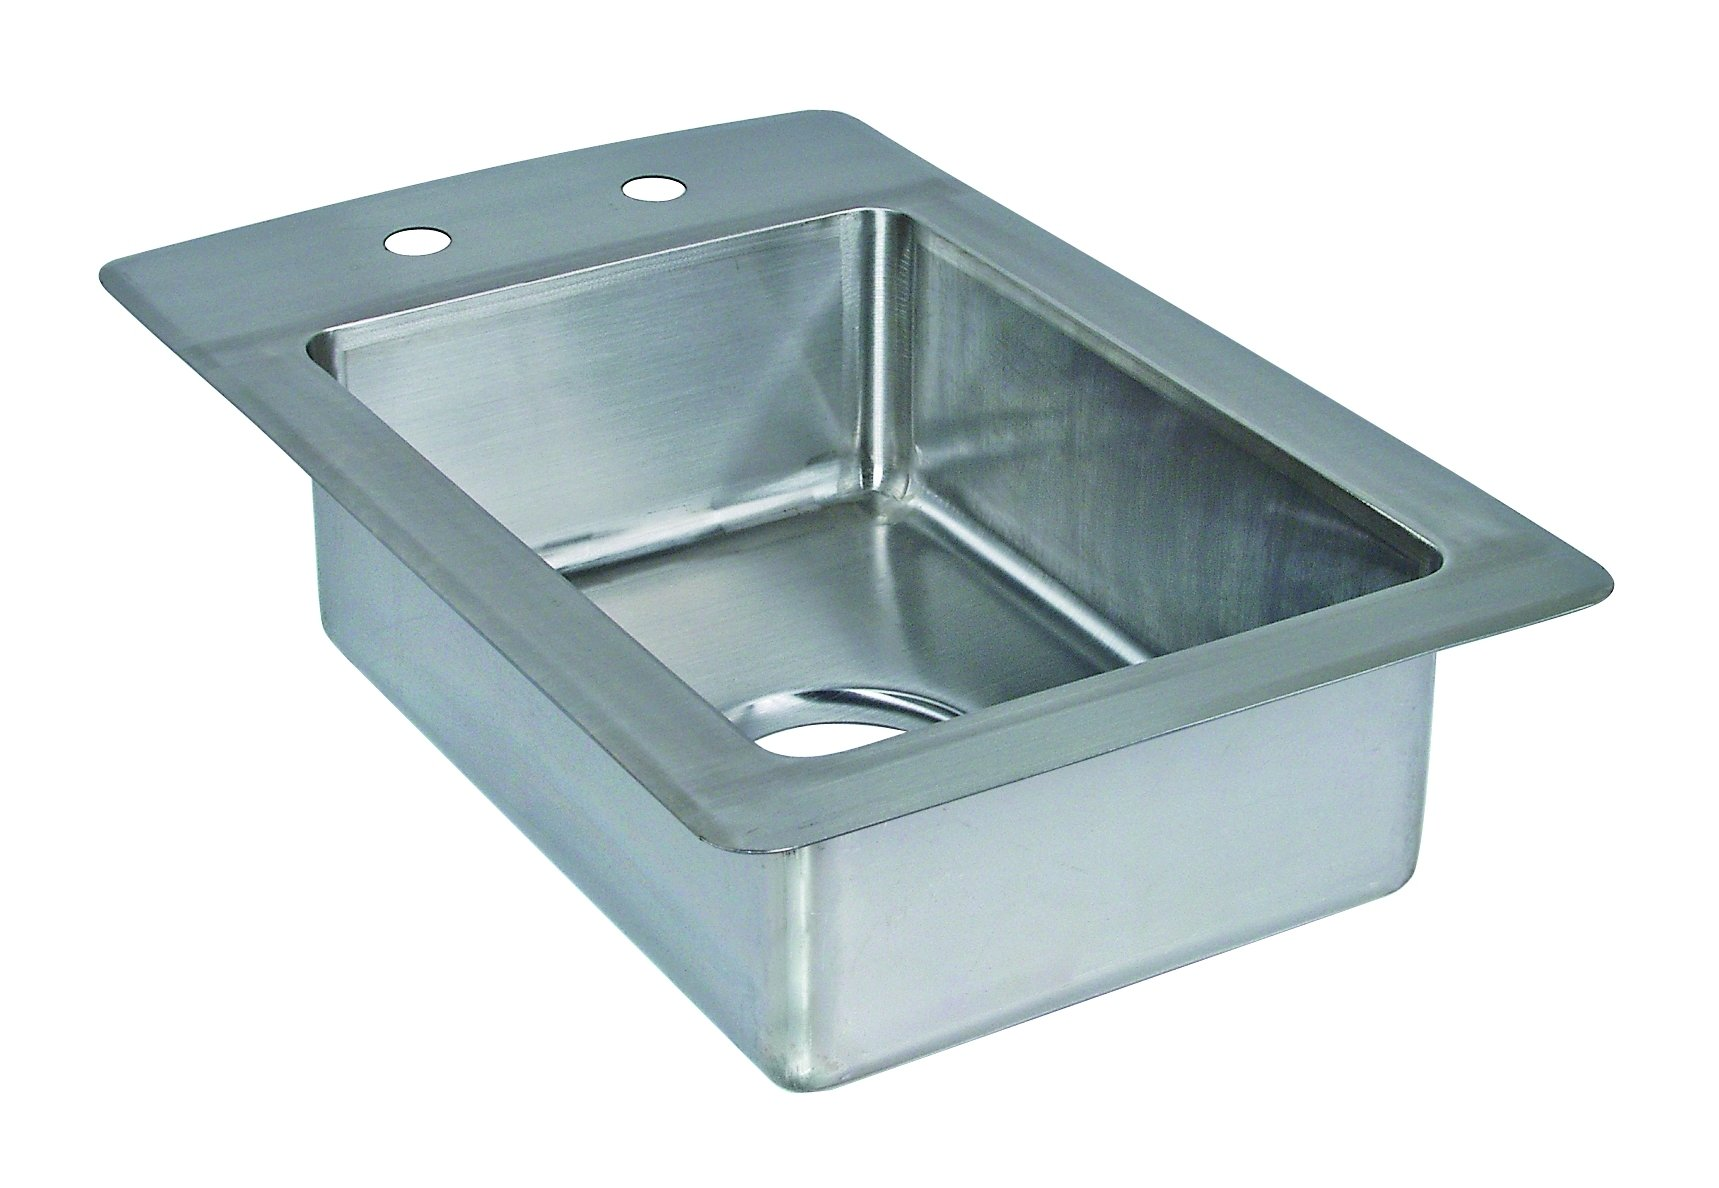 Tarrison DI1410-10 Stainless Steel Heavy Duty Drop In Coved Corner Sink, 13'' Length x 10'' Height x 20'' Depth